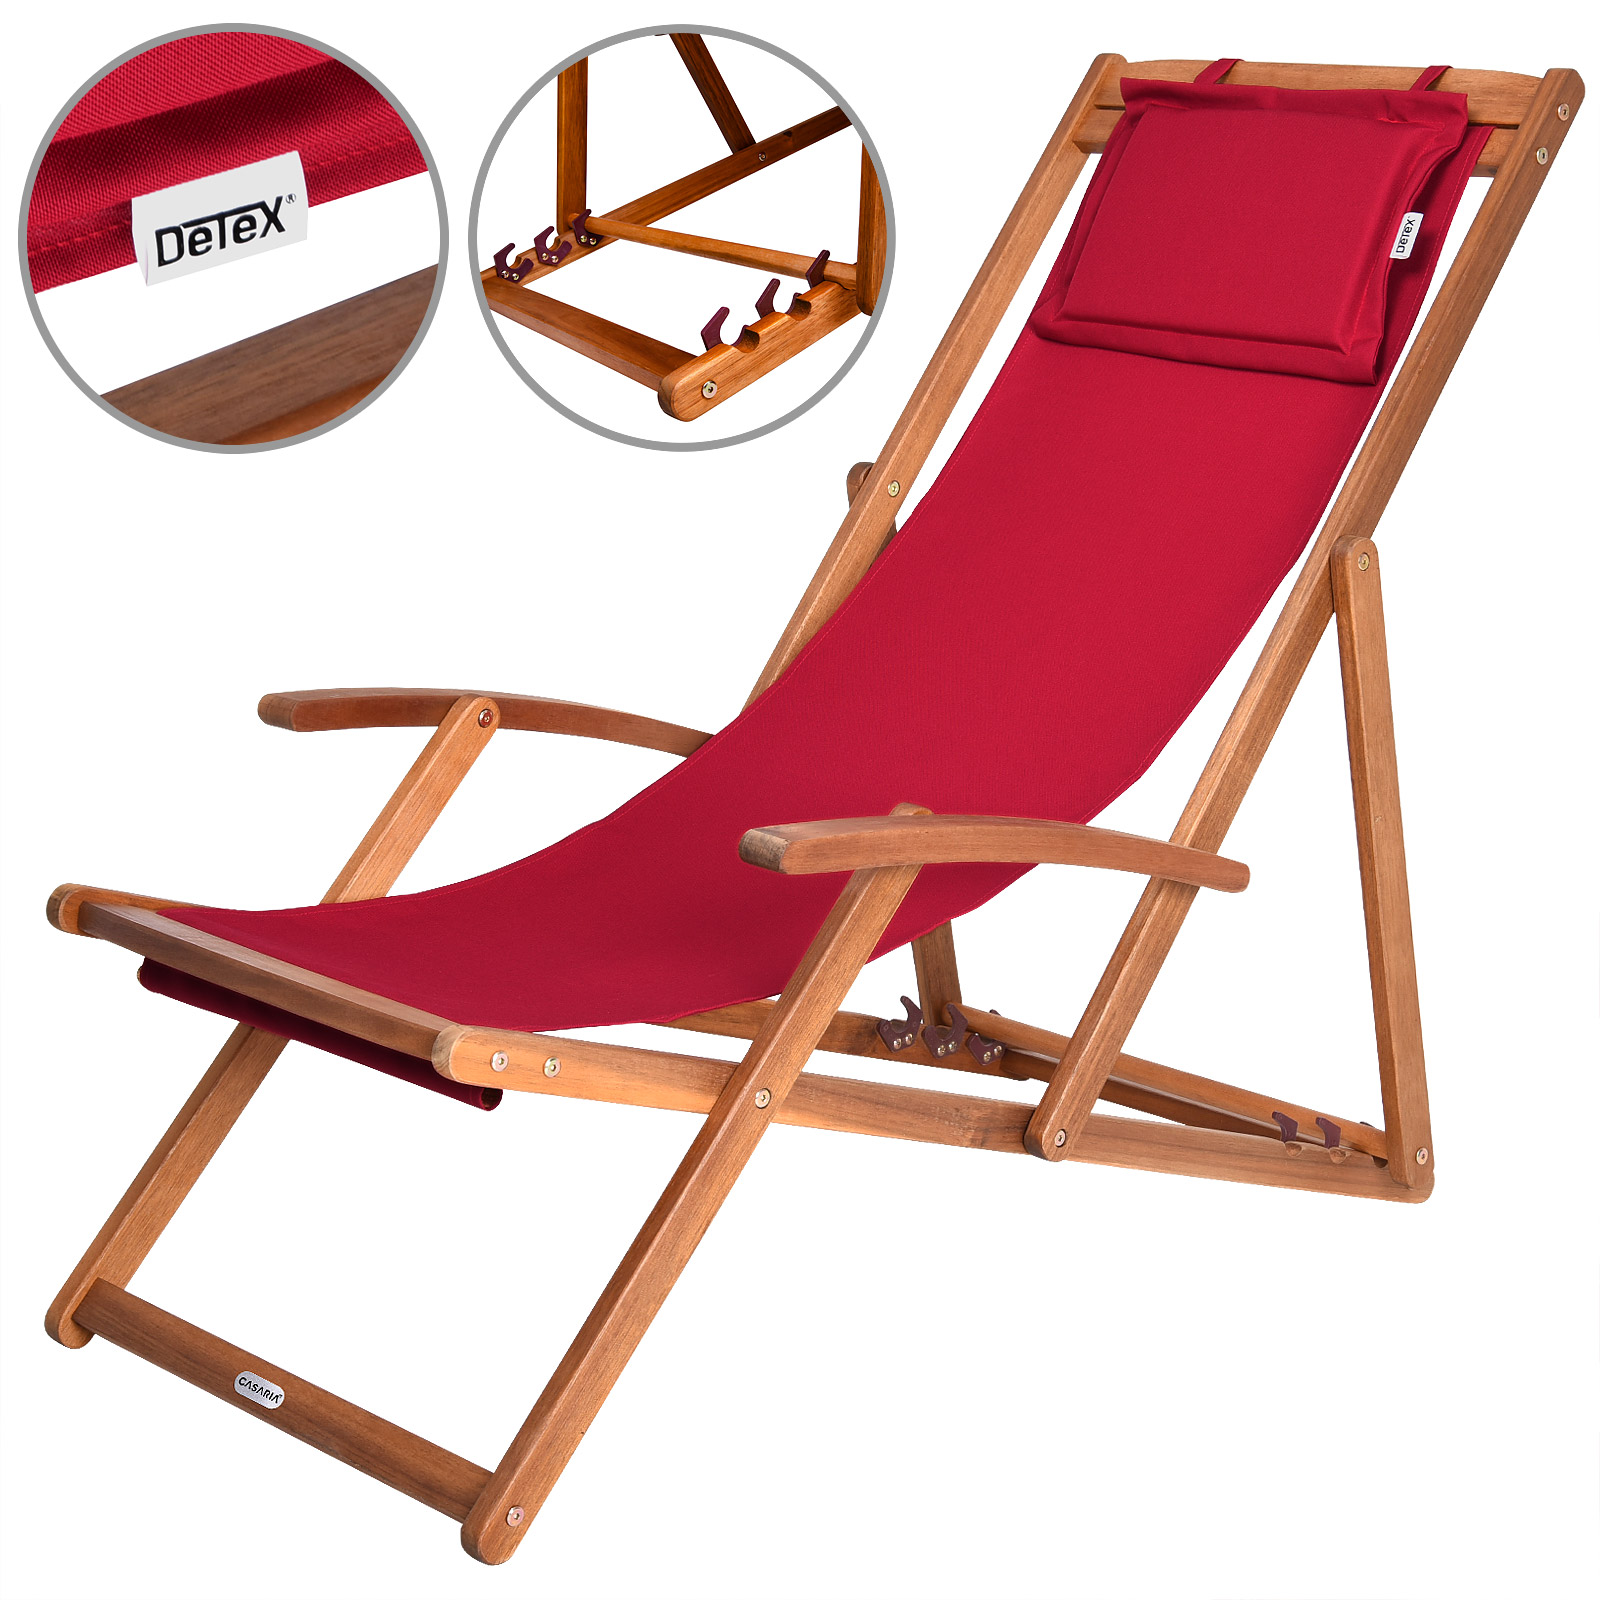 liegestuhl sonnenliege holz gartenliege strandliege liege. Black Bedroom Furniture Sets. Home Design Ideas